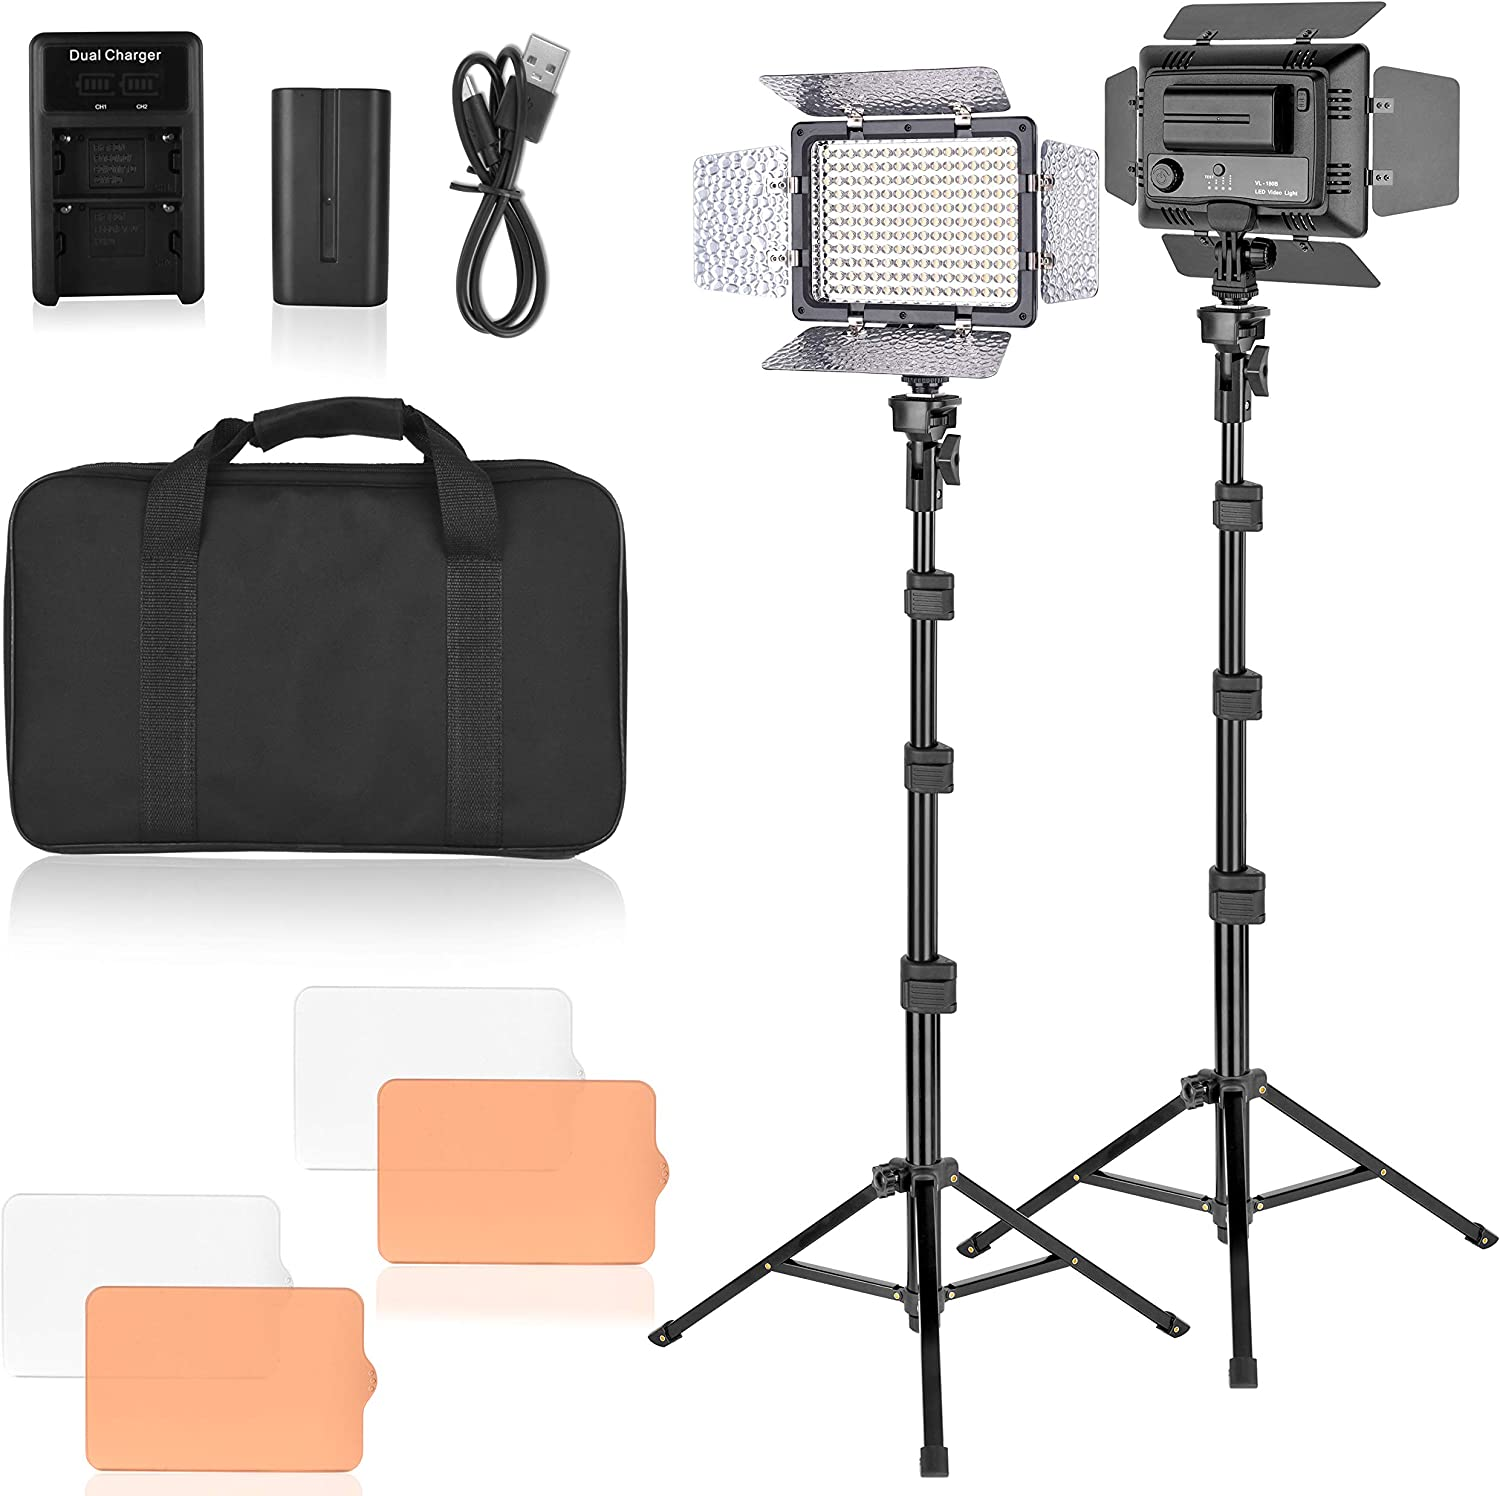 Emart LED Video Studio Light Kit, Dimmable 176 LED Panel Lighting Kit with Adjustable Tripod Stand, Rechargeable Batteries Use, for Room Photography, YouTube, Streaming Lighting, Filming - 2 Pack